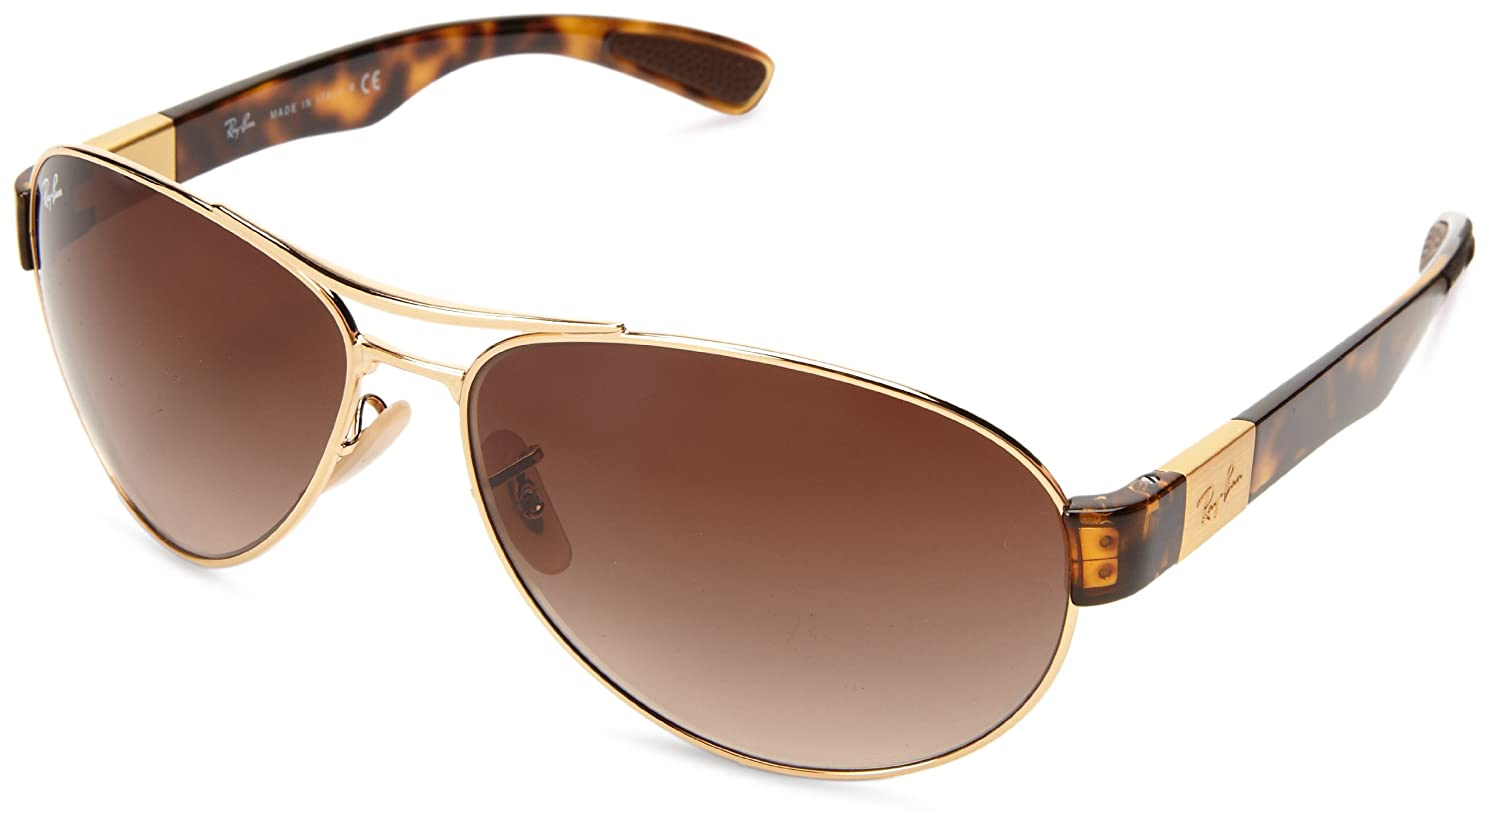 72ea35e77ec Amazon.com  Ray-Ban RB3509 - ARISTA Frame BROWN GRADIENT Lenses 63mm  Non-Polarized  Ray-Ban  Clothing